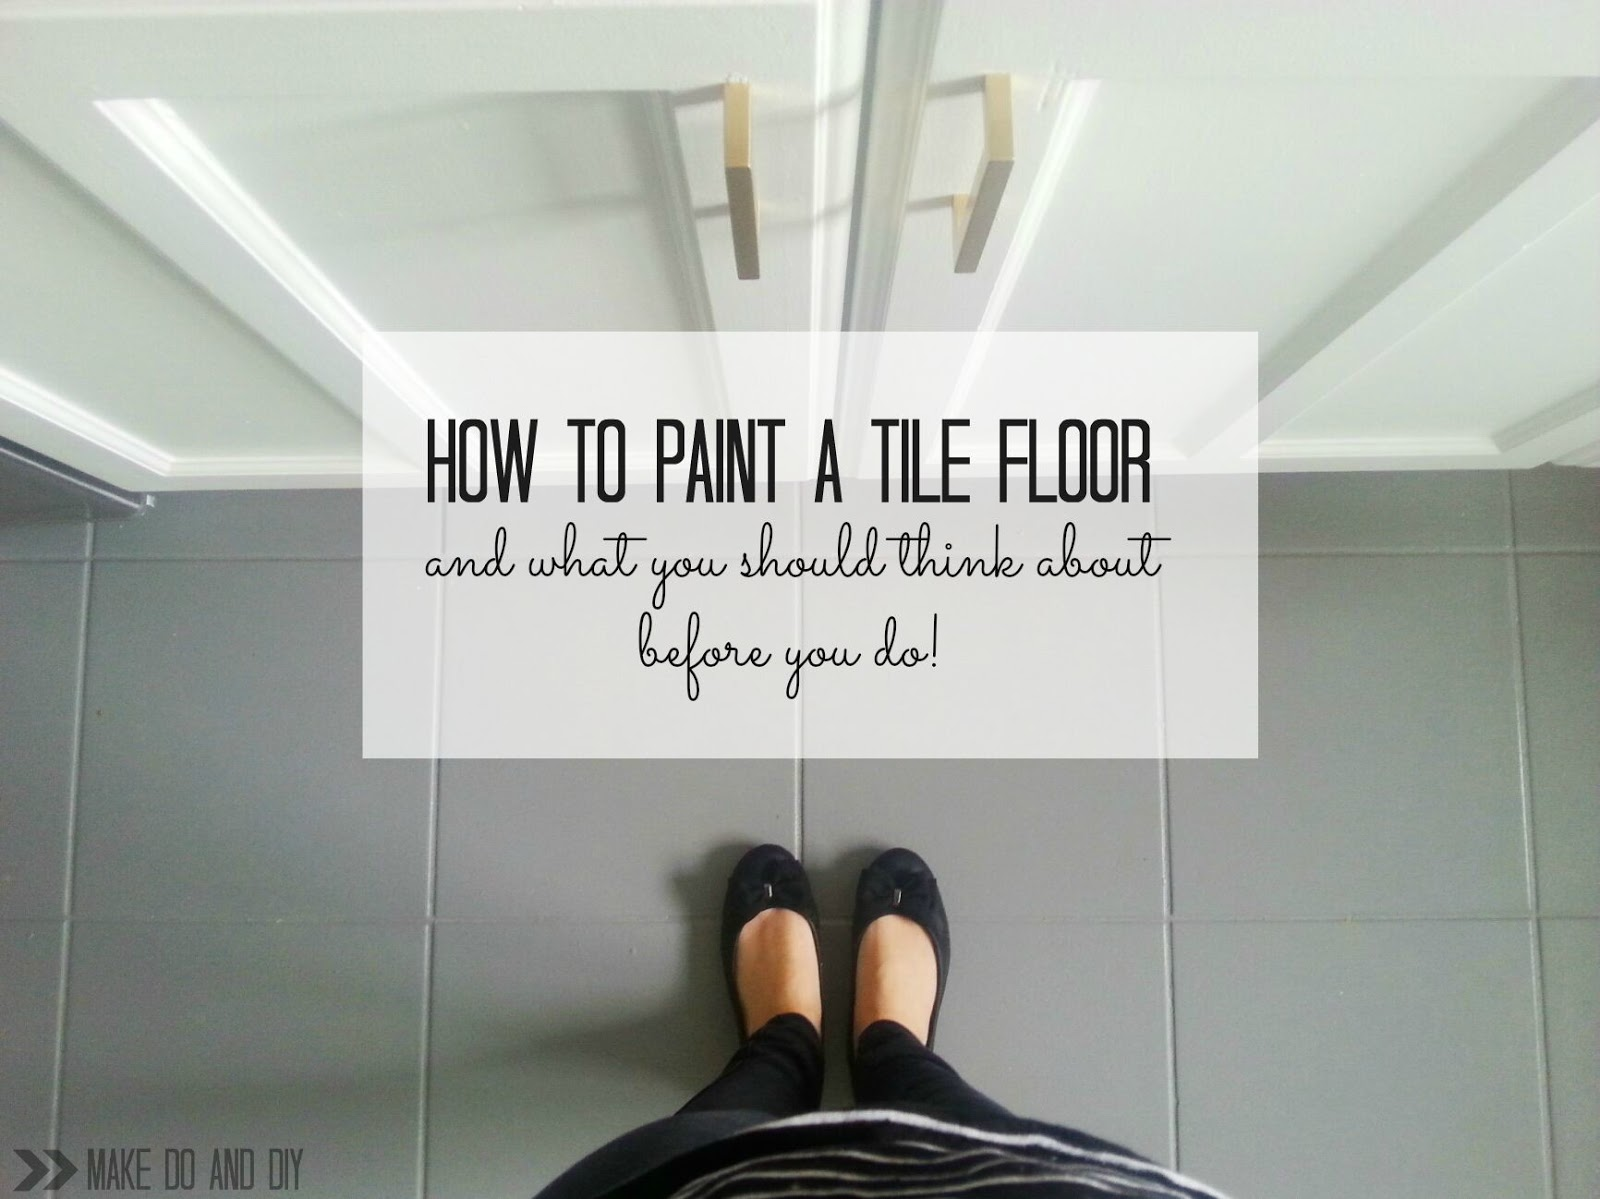 Painted tile floor no really make do and diy - Can i paint over bathroom tiles ...